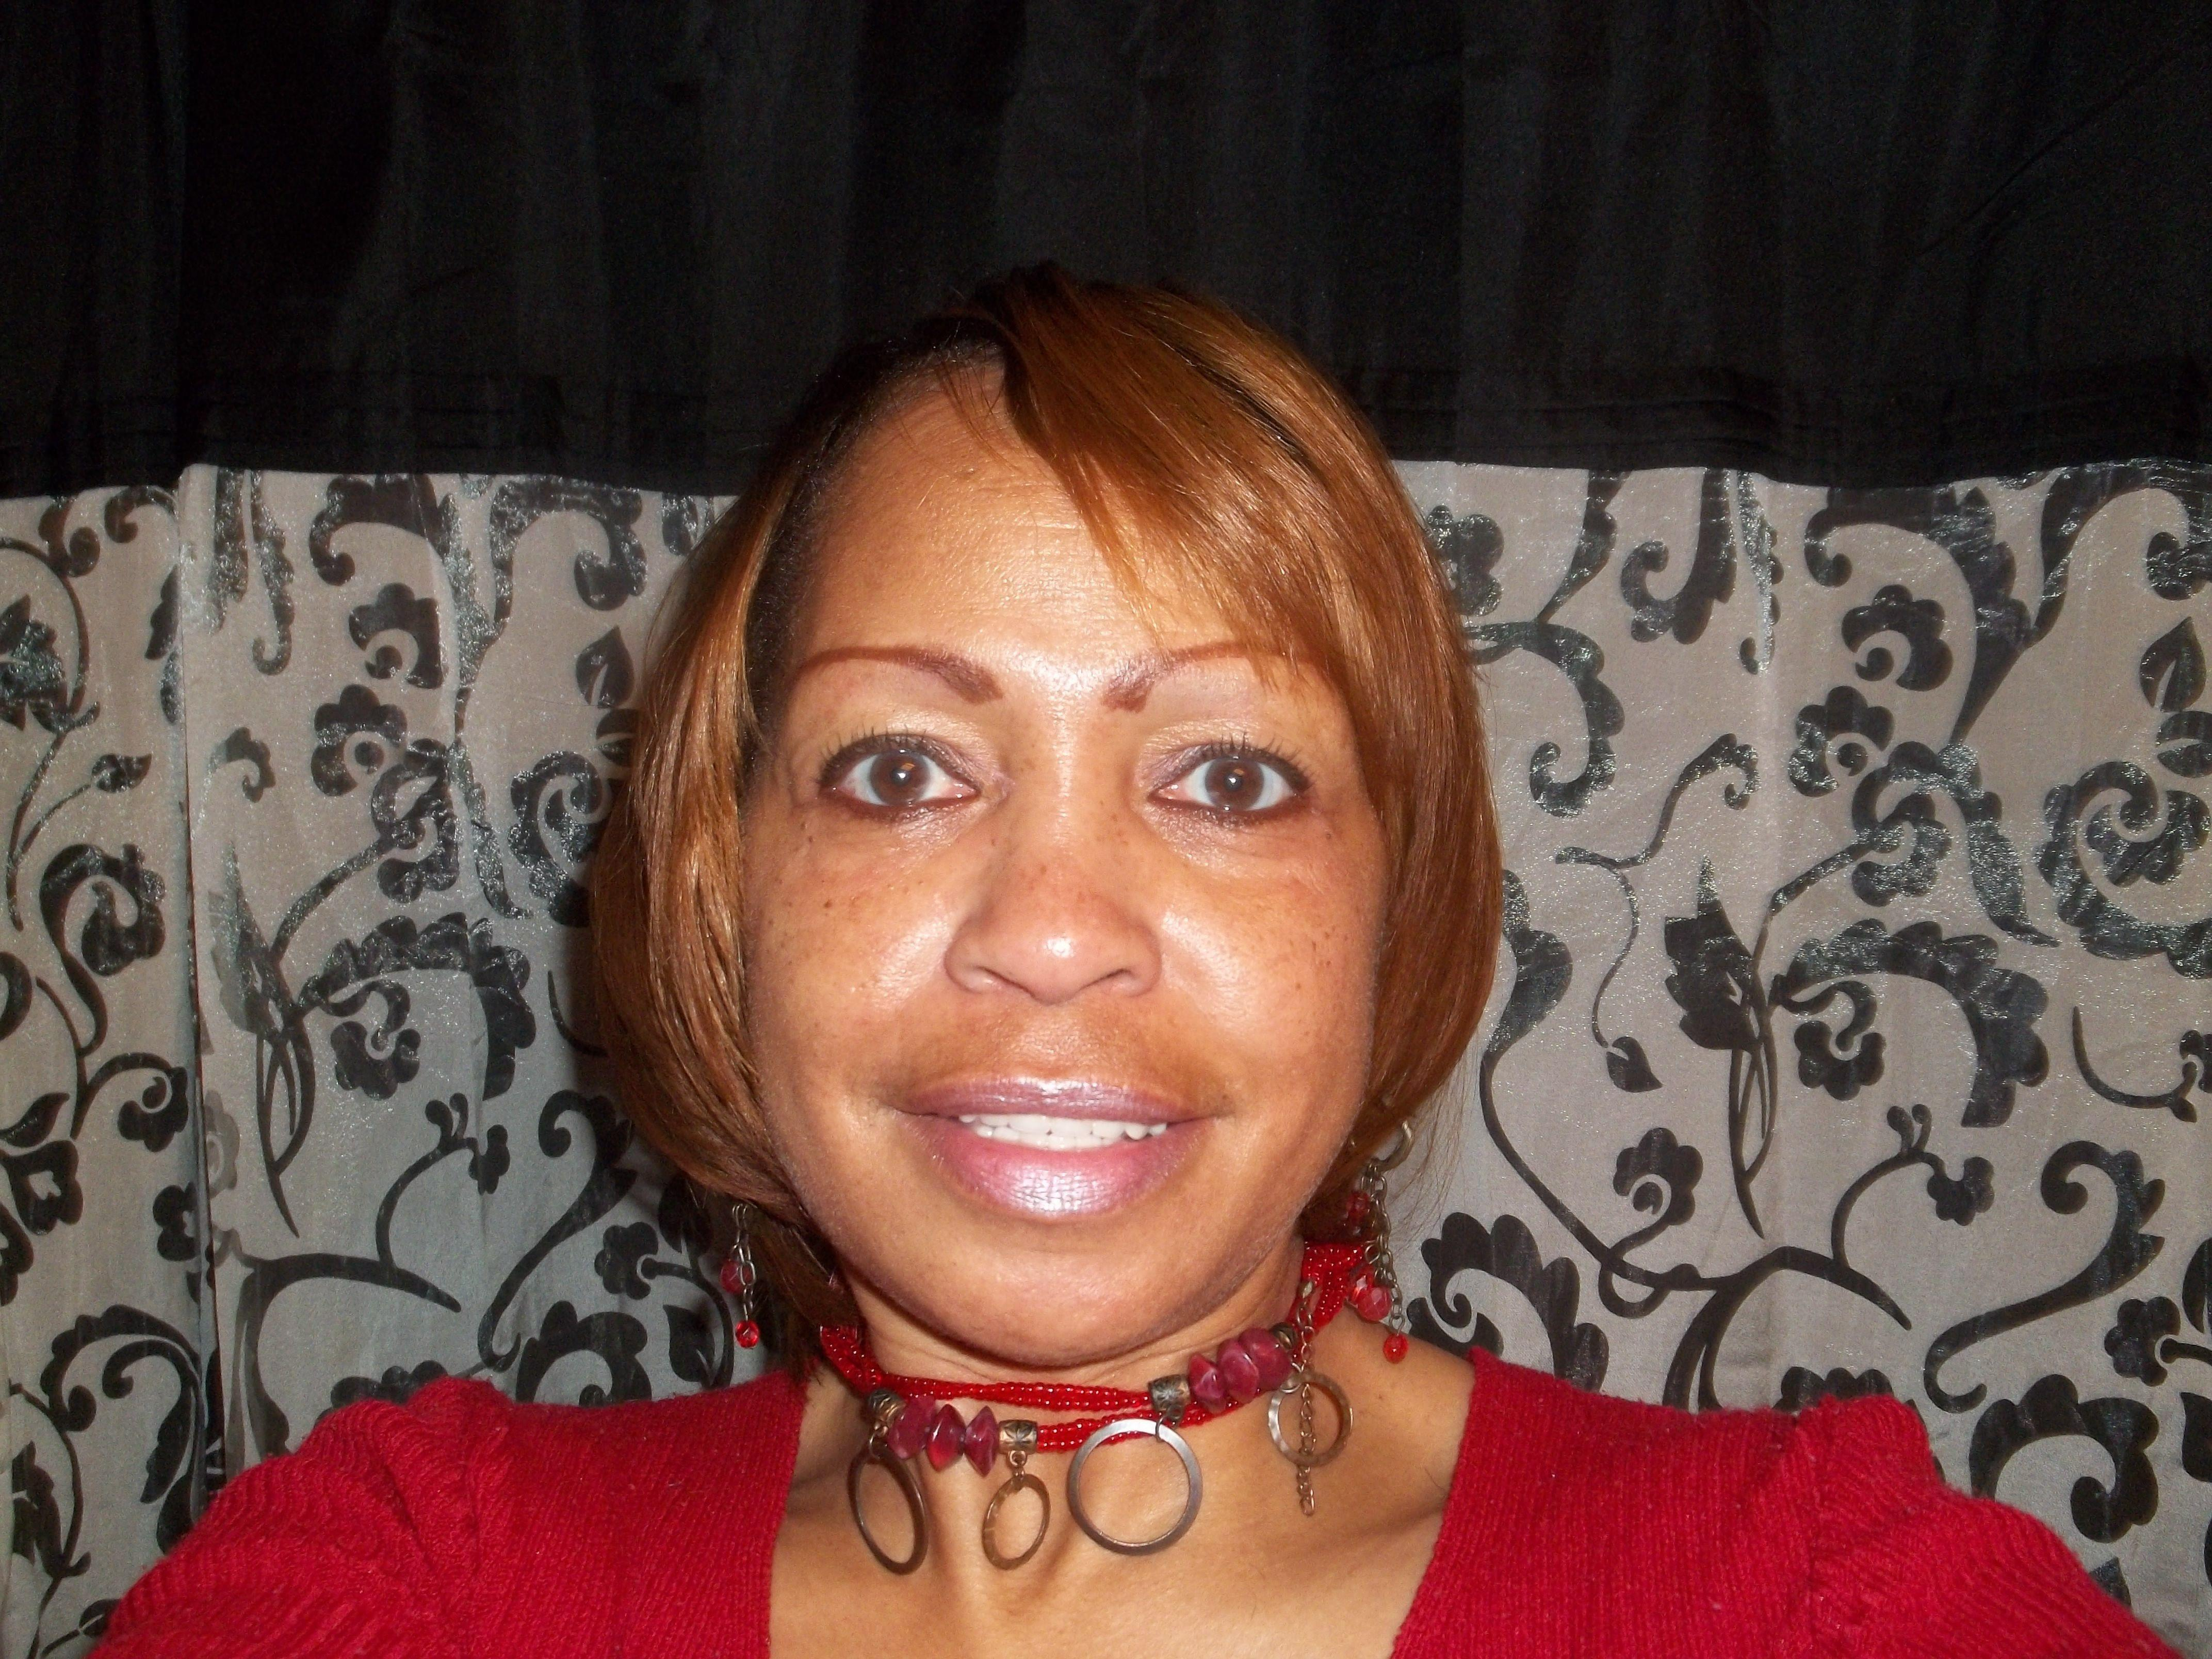 ellicott city christian single women Our free personal ads are full of single women and men in ellicott city looking  100% free online dating in ellicott city  ellicott city christian women.